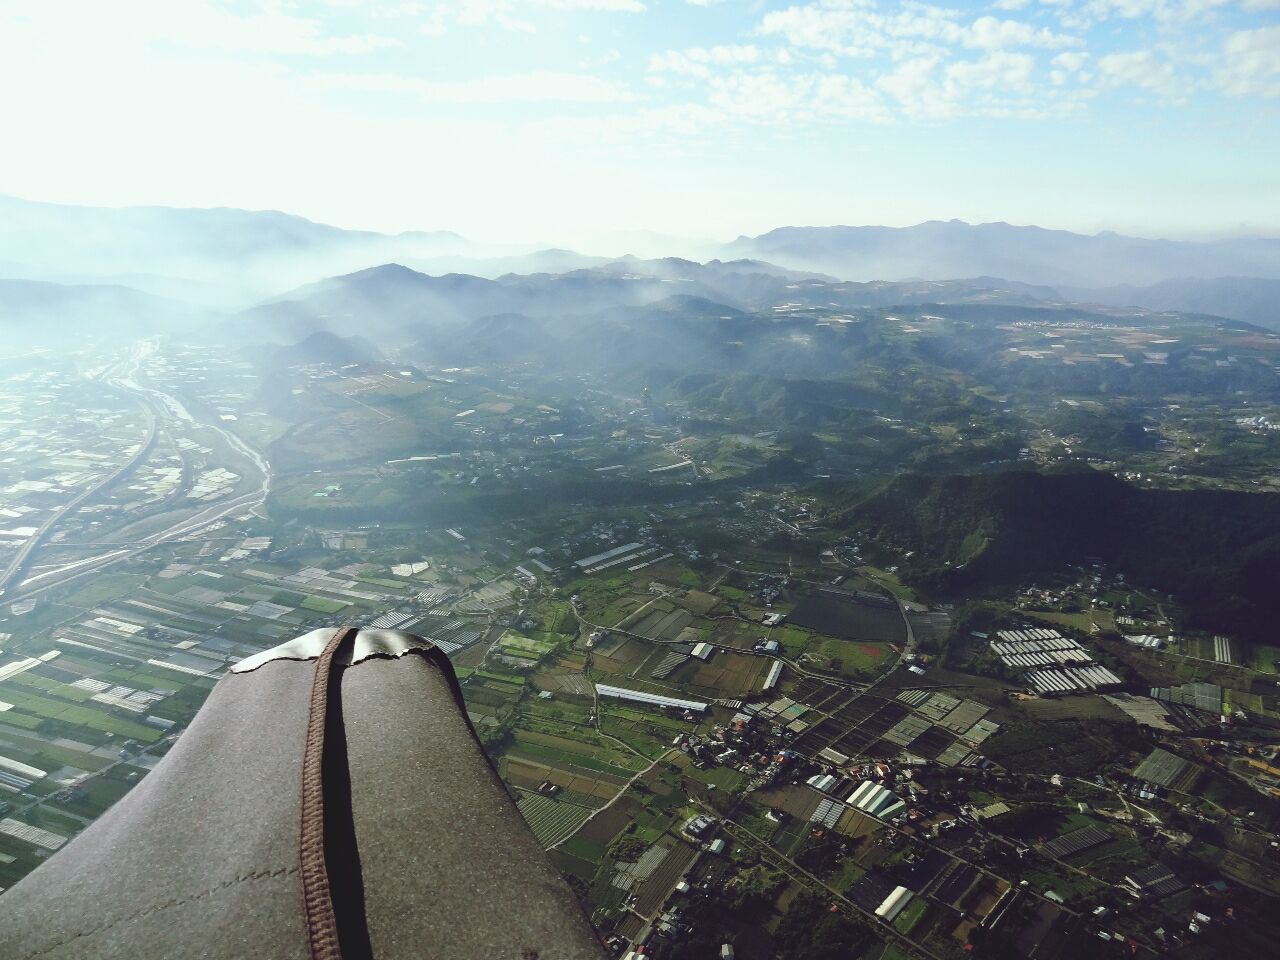 Cropped image of airplane wing flying over landscape